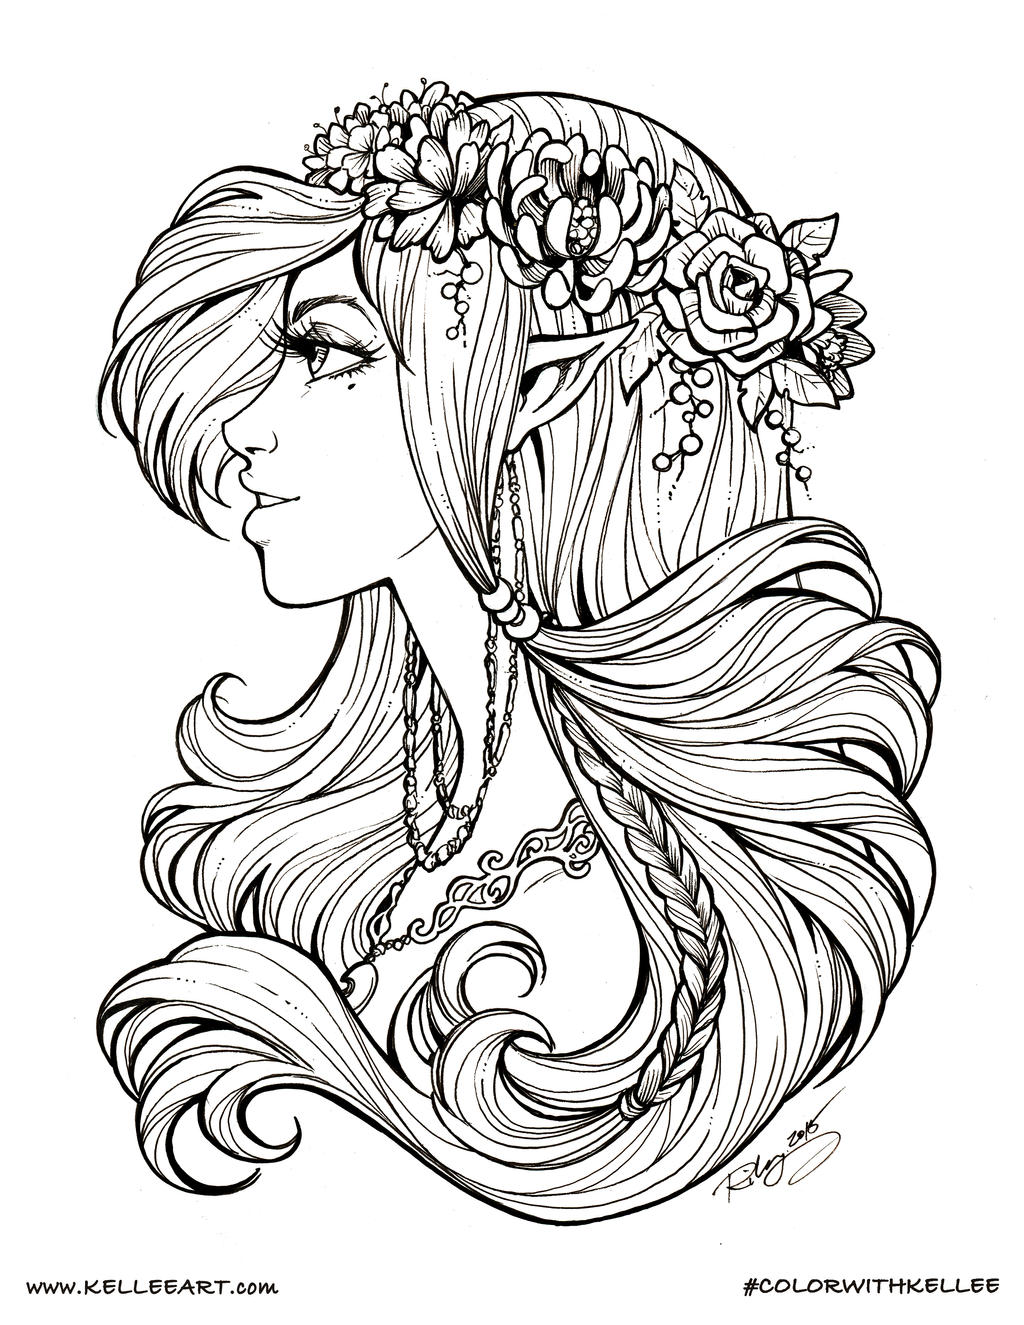 Colorwithkellee elf by kelleeart on deviantart for Realistic mermaid coloring pages